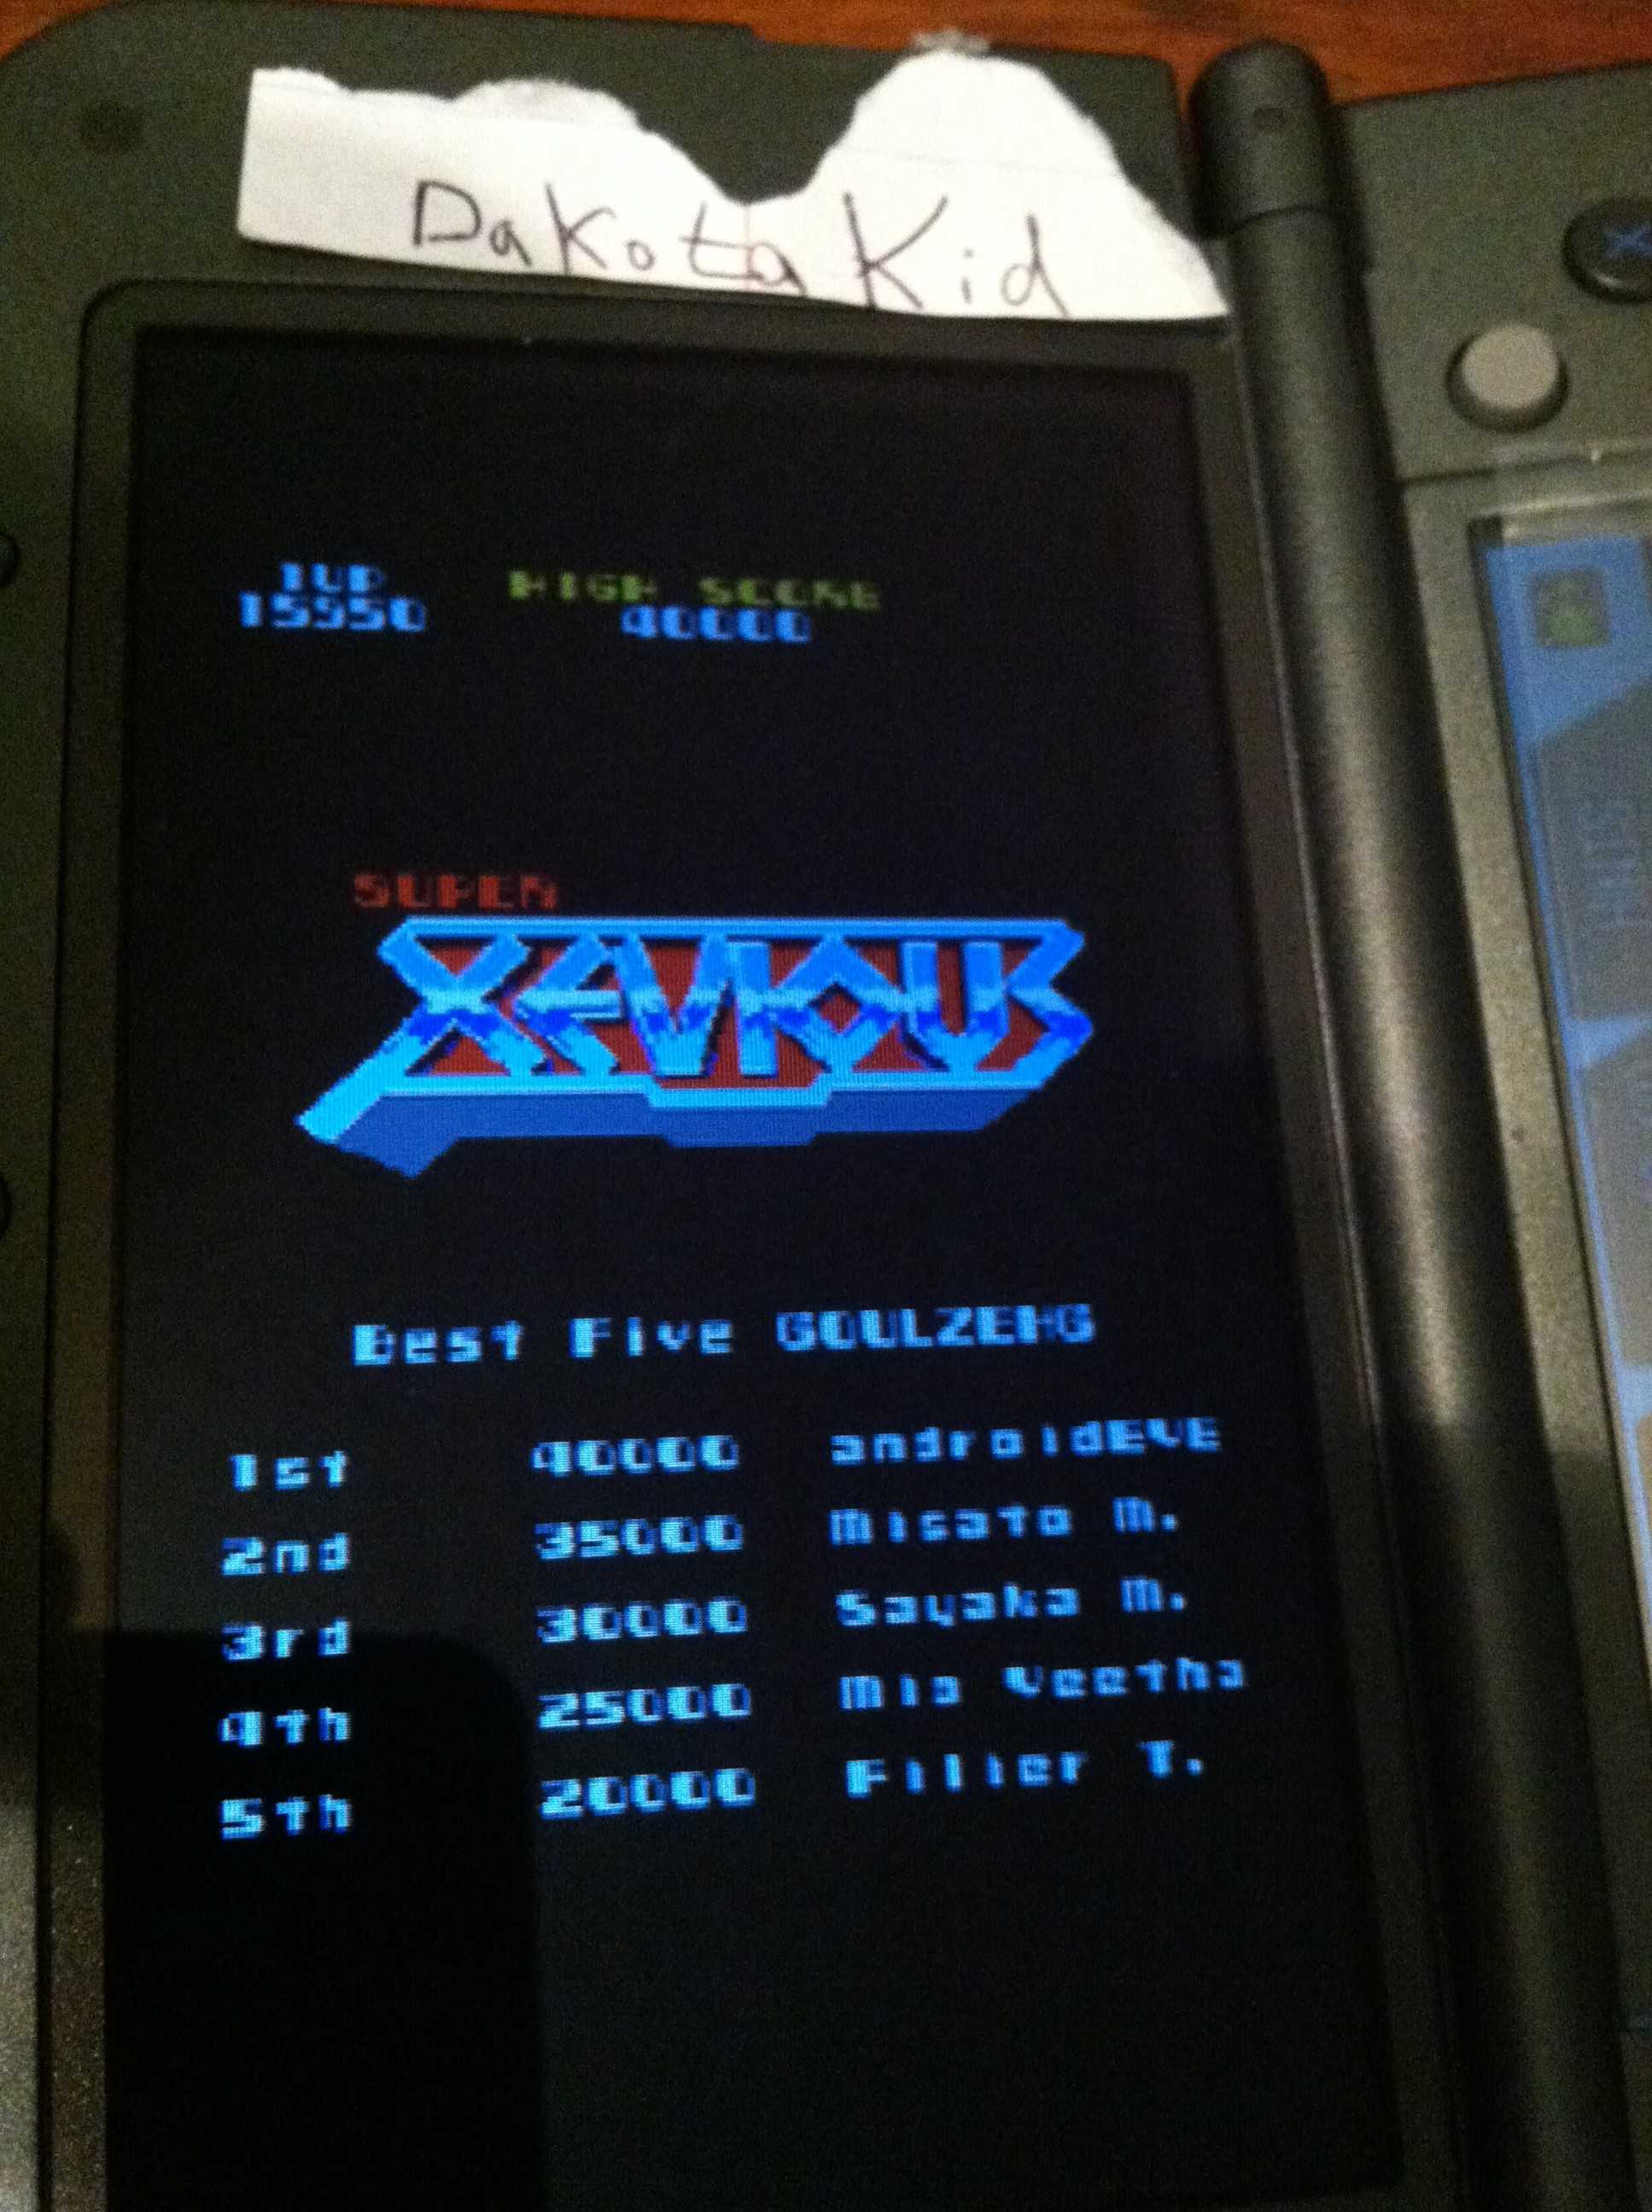 DakotaKid: Namco Museum: Super Xevious (Nintendo DS) 15,950 points on 2017-11-30 17:36:49